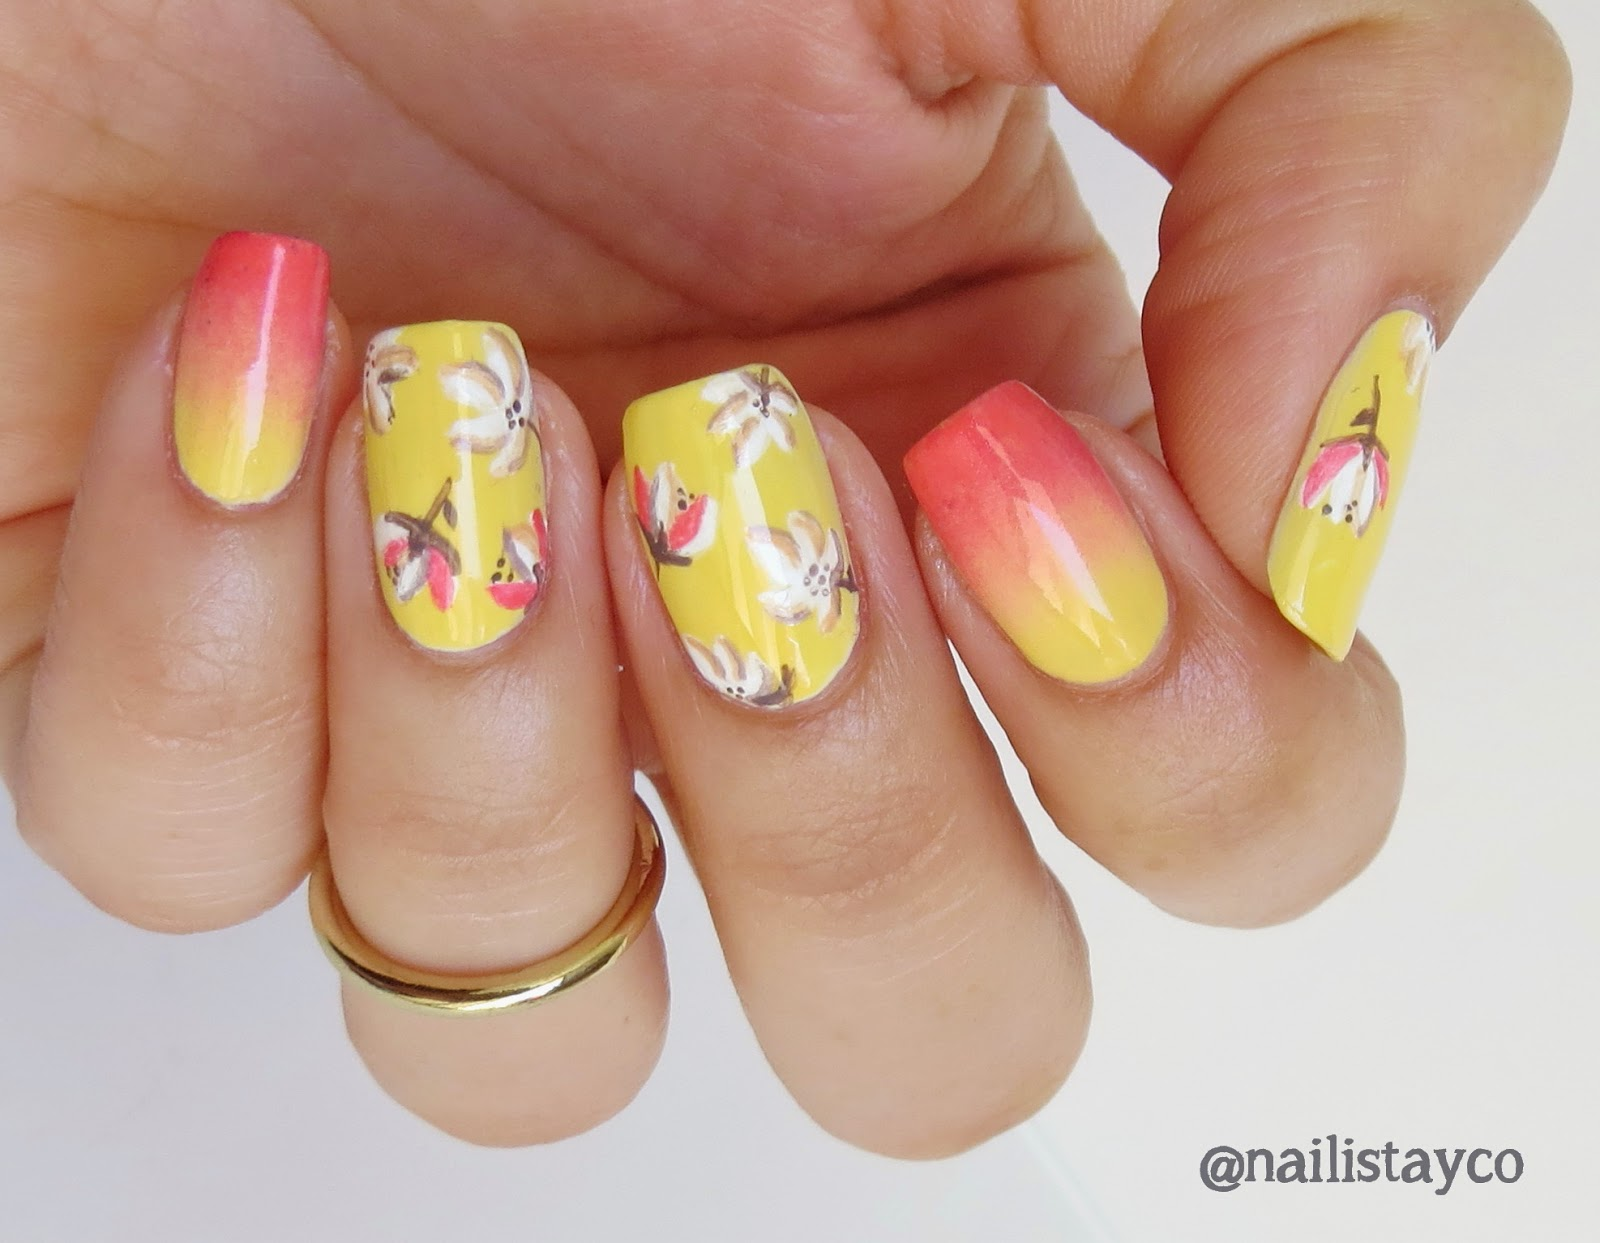 Cute Stick On Nail Polish Tall How To Apply Nail Polish Strips Solid Opi Nail Polish Color Names List Toe Nail Fungus Youthful Disney Princess Nail Polish Set PinkCurrent Nail Polish Colors Paulina\u0026#39;s PassionsTropical Flower Nails By Nailista Y Co